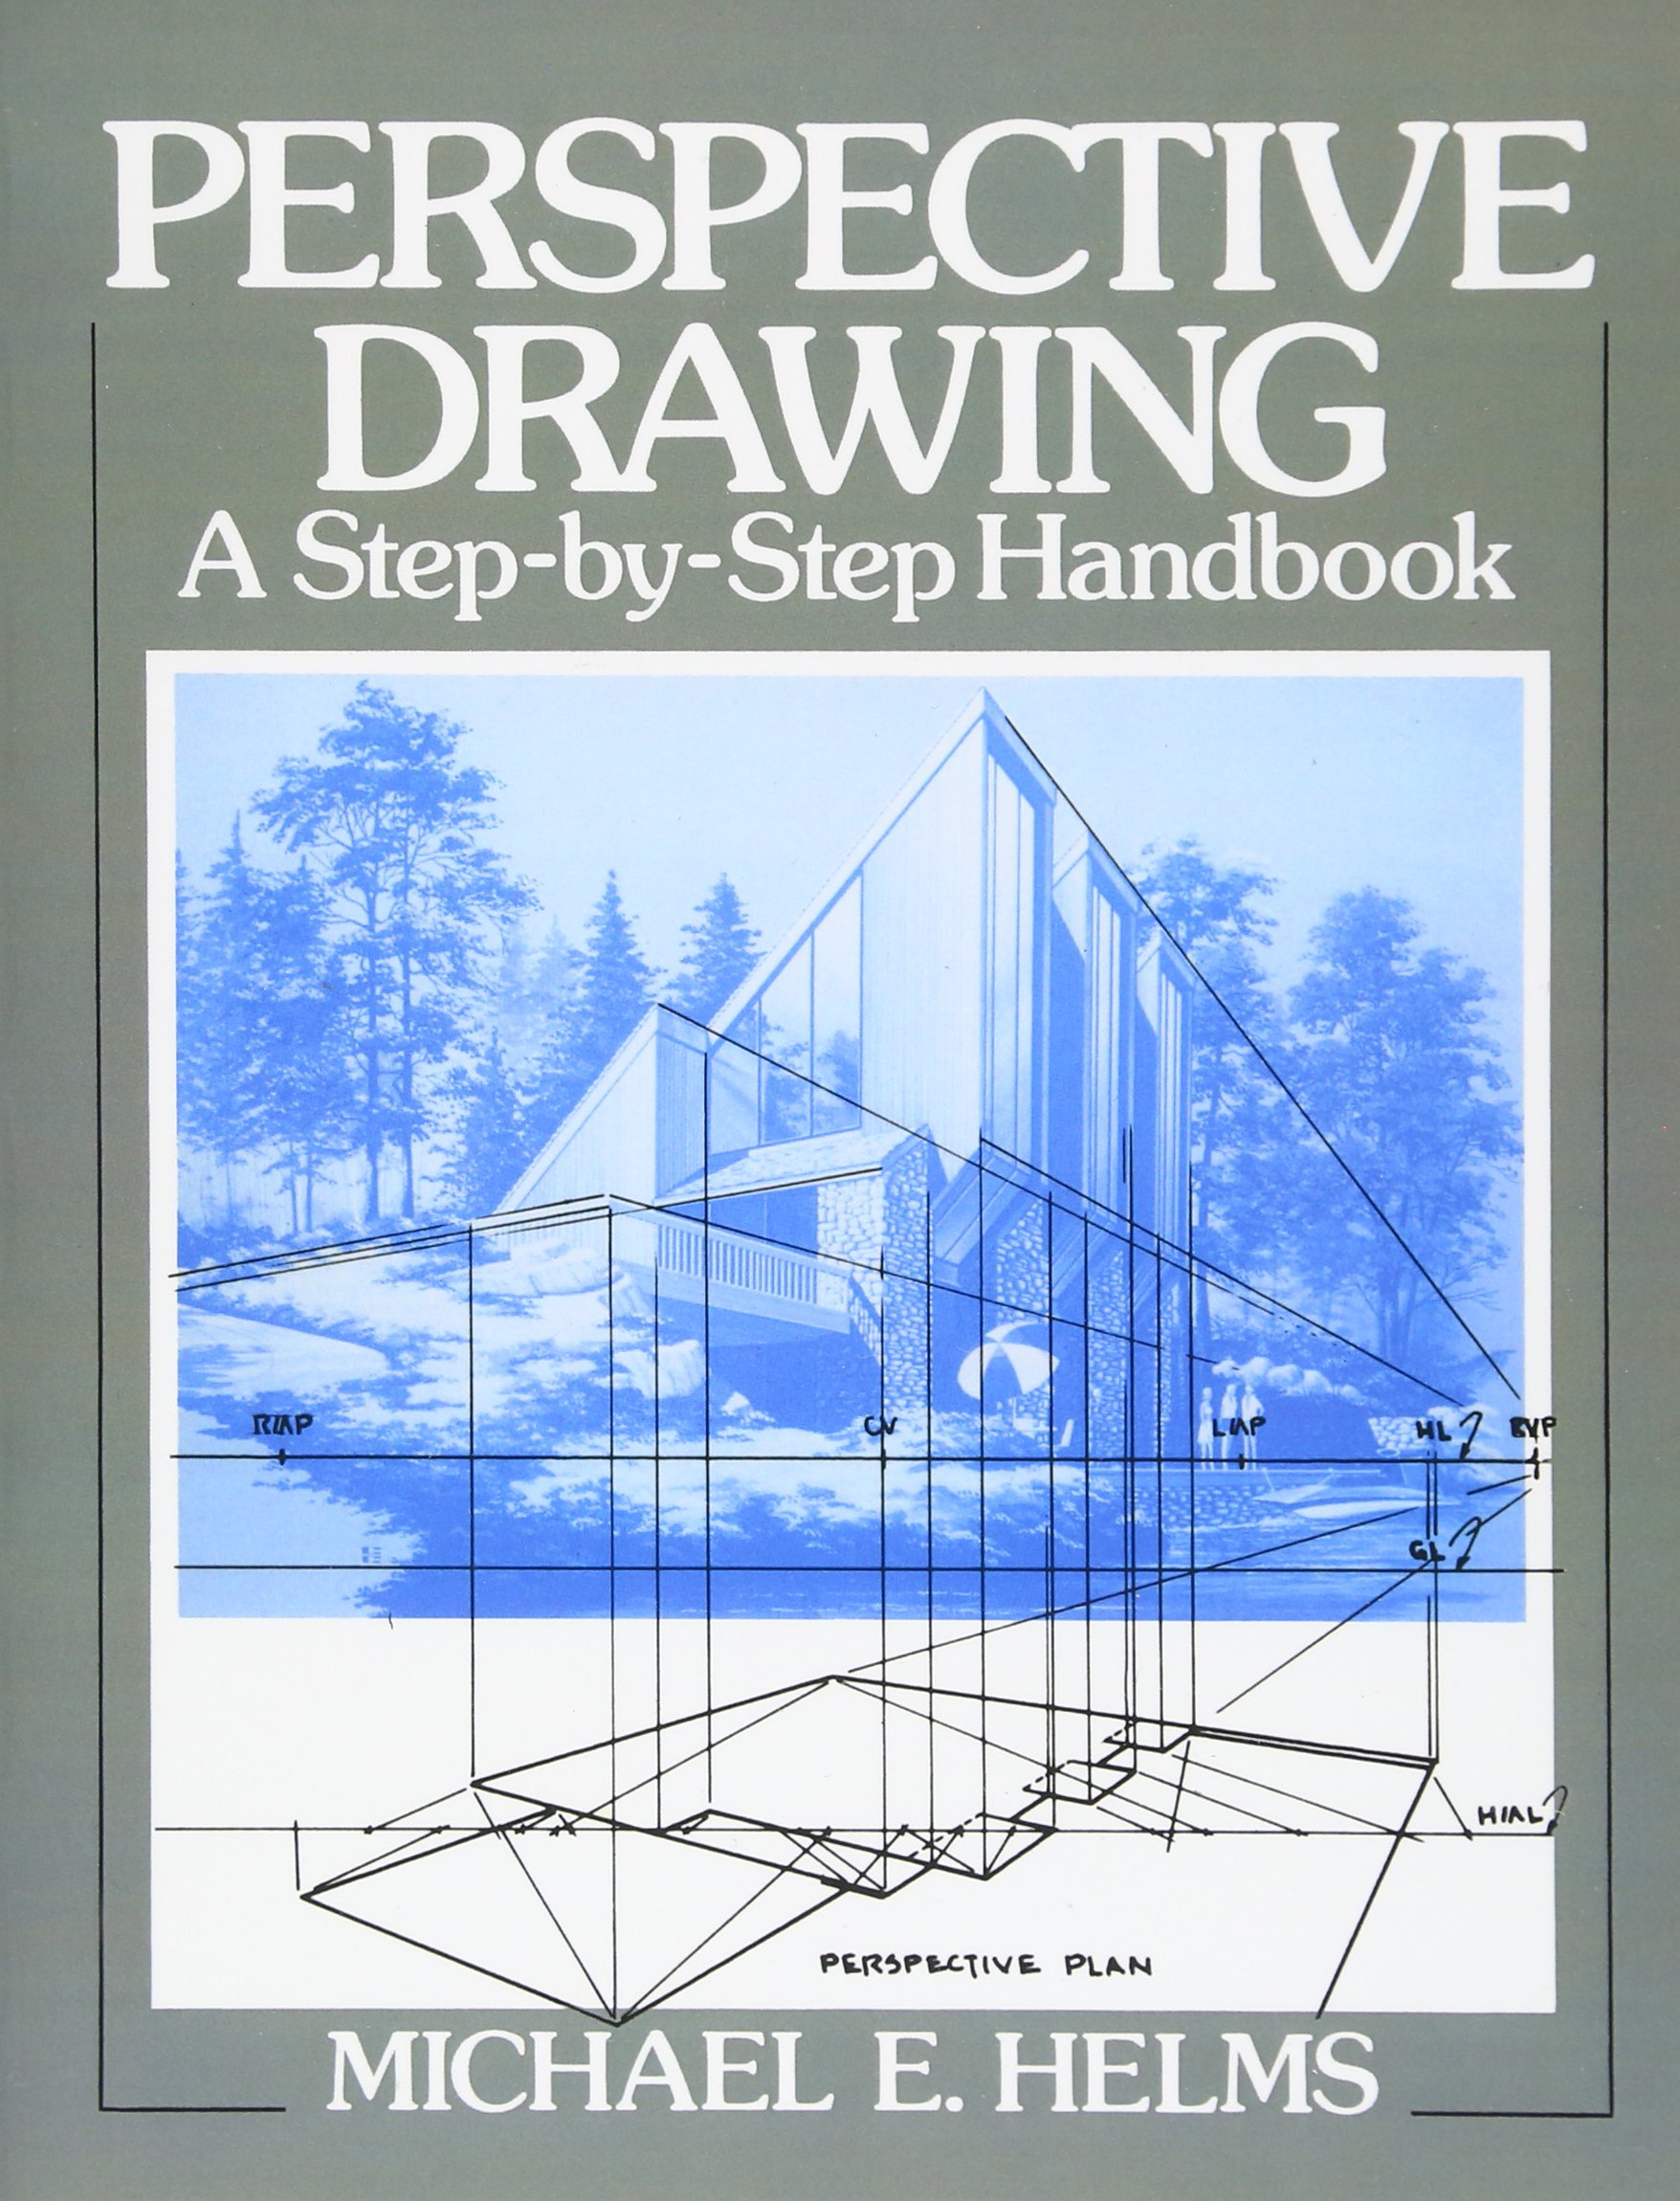 Book Review- Perspective Drawing A Step-by-Step Handbook by Michael E. Helms